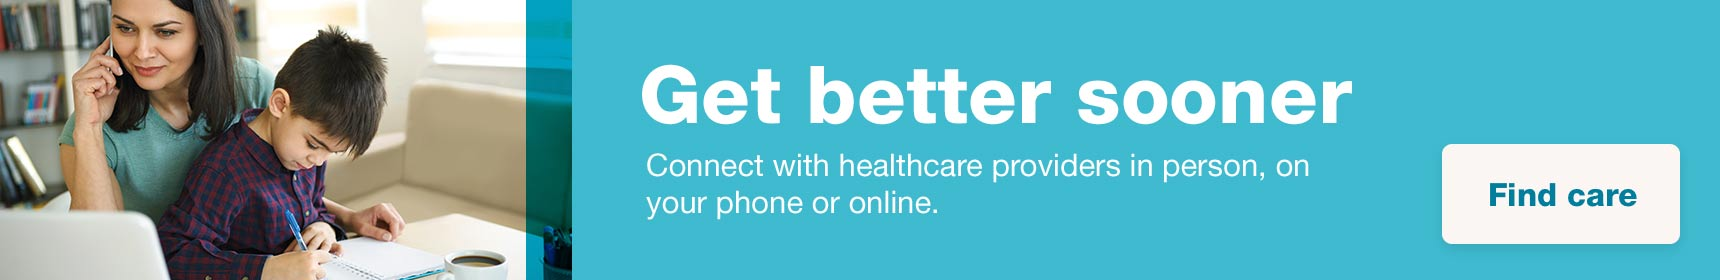 Get better sooner. Connect with healthcare providers in person, on your phone or online.